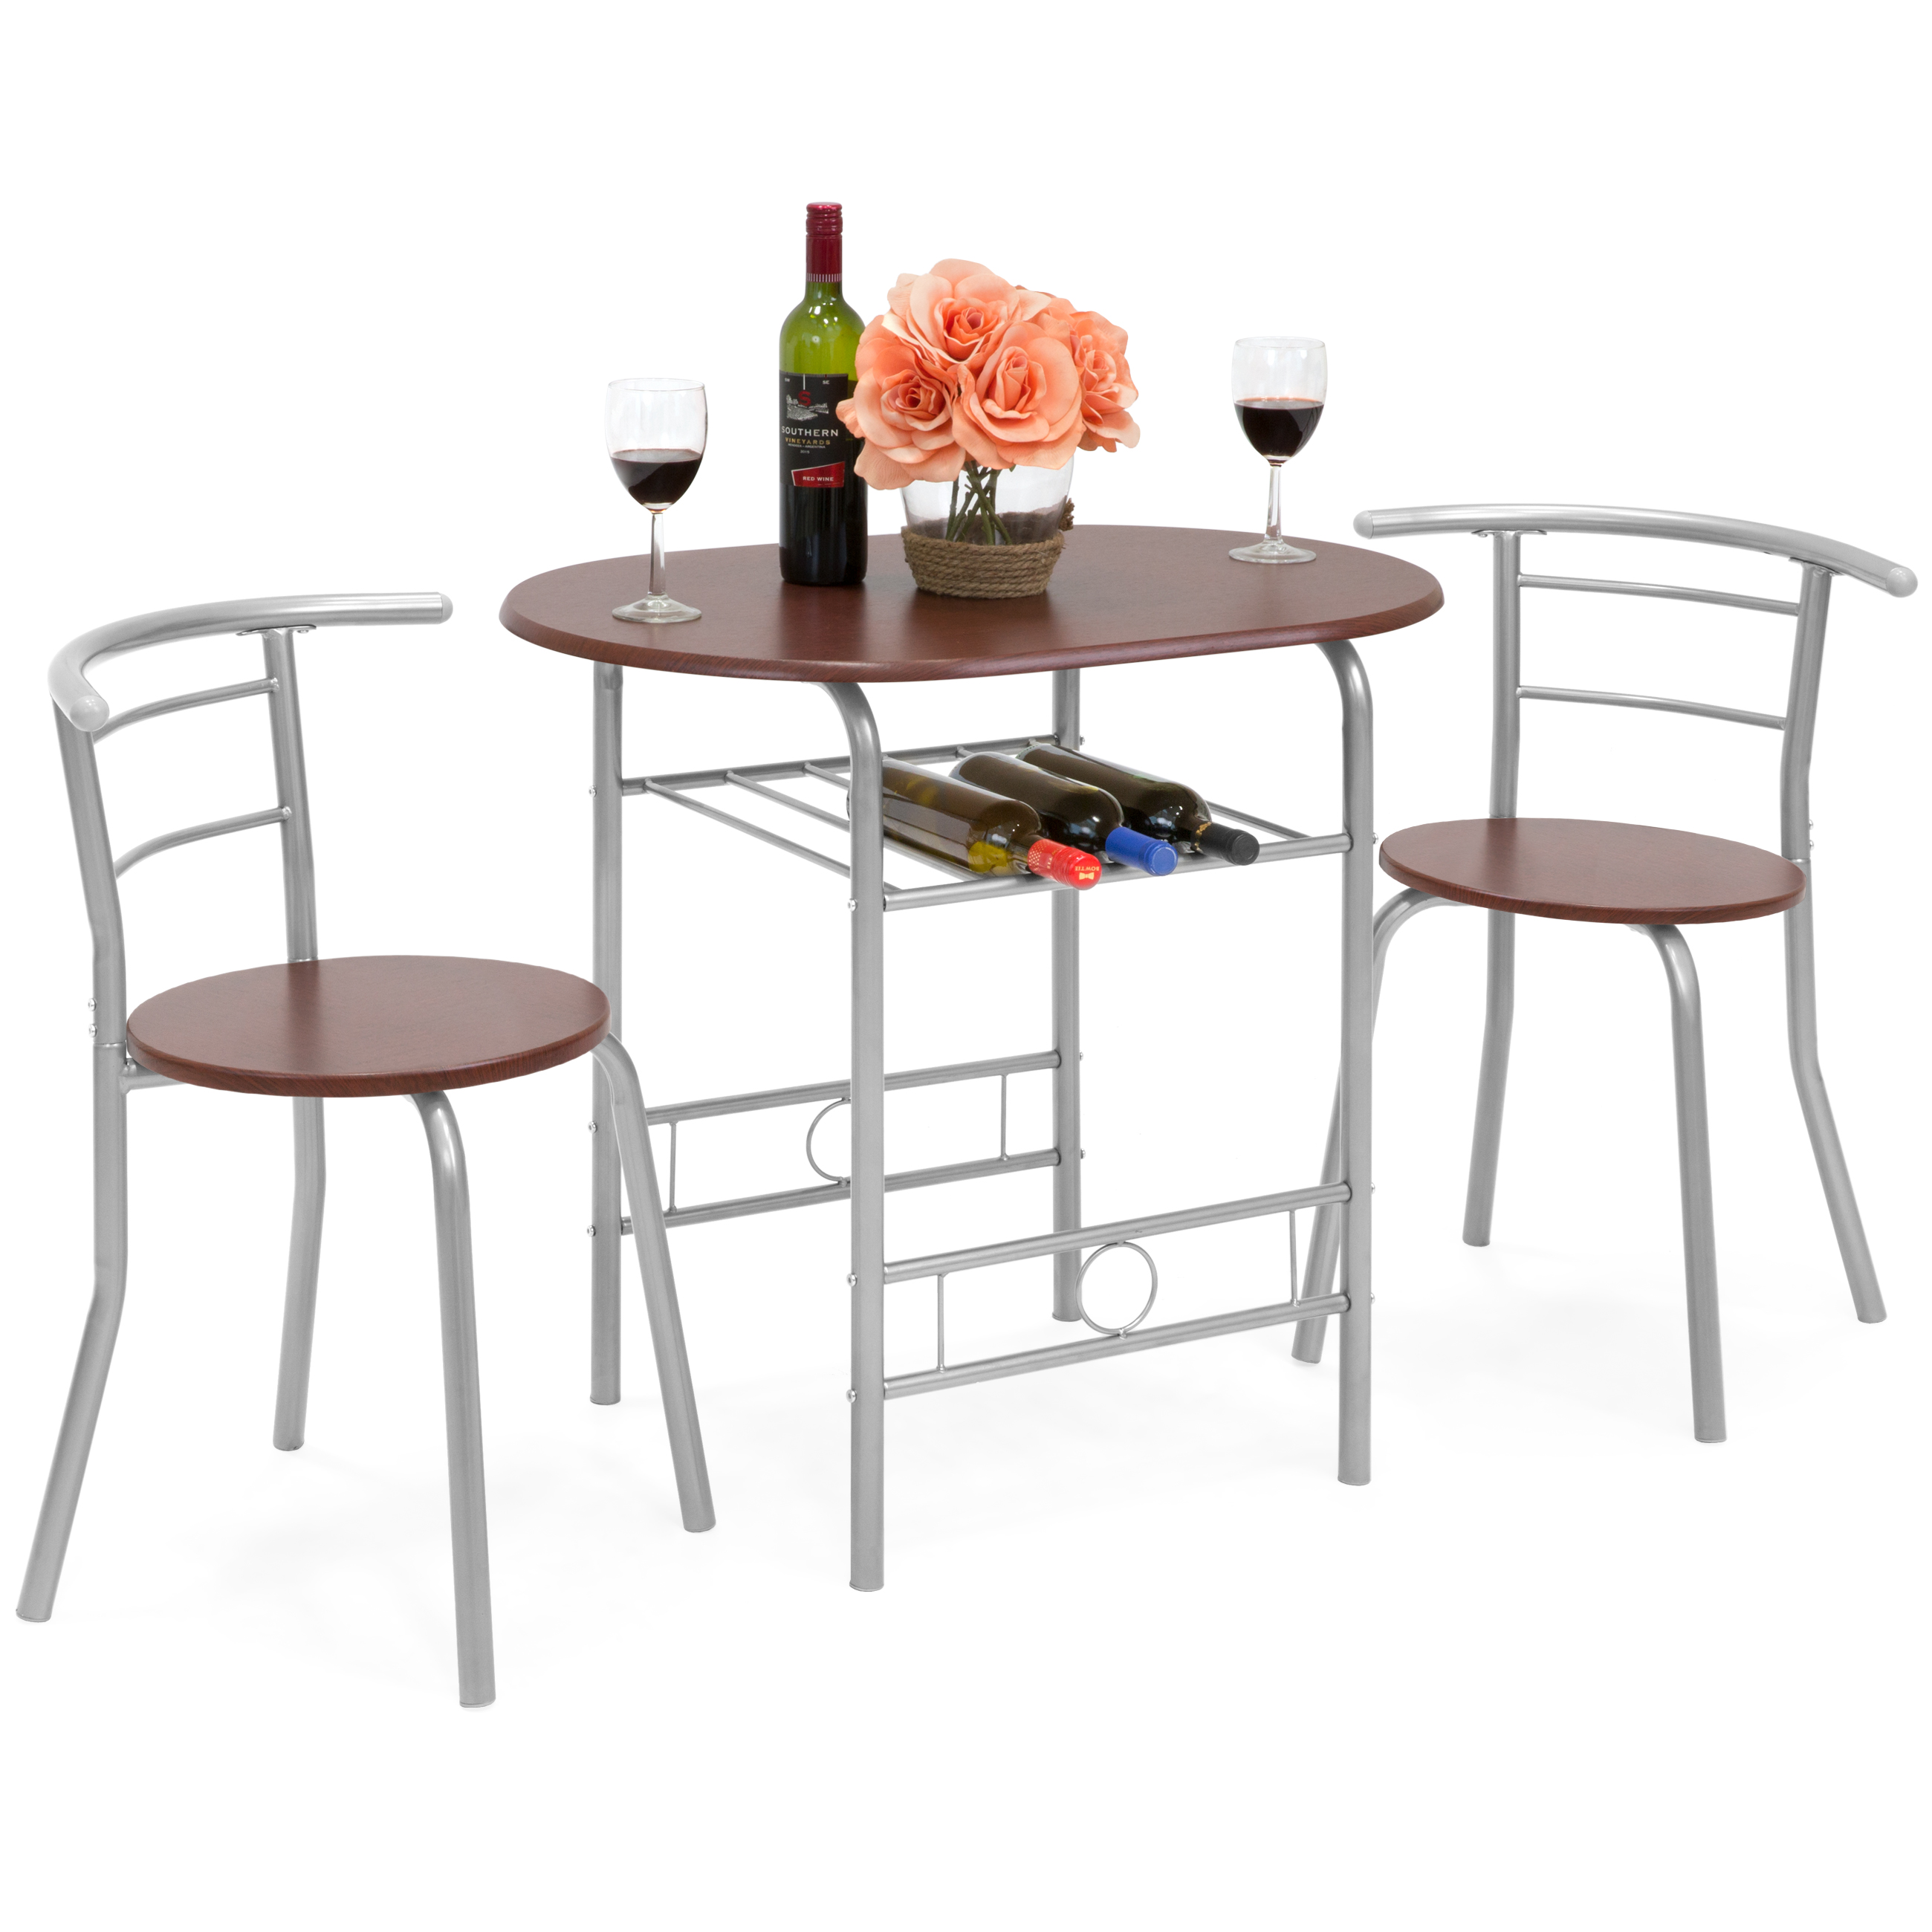 Best Choice Products 3-Piece Wooden Kitchen Dining Room Round Table and Chairs Set w  Built In Wine Rack (Espresso) by Best Choice Products